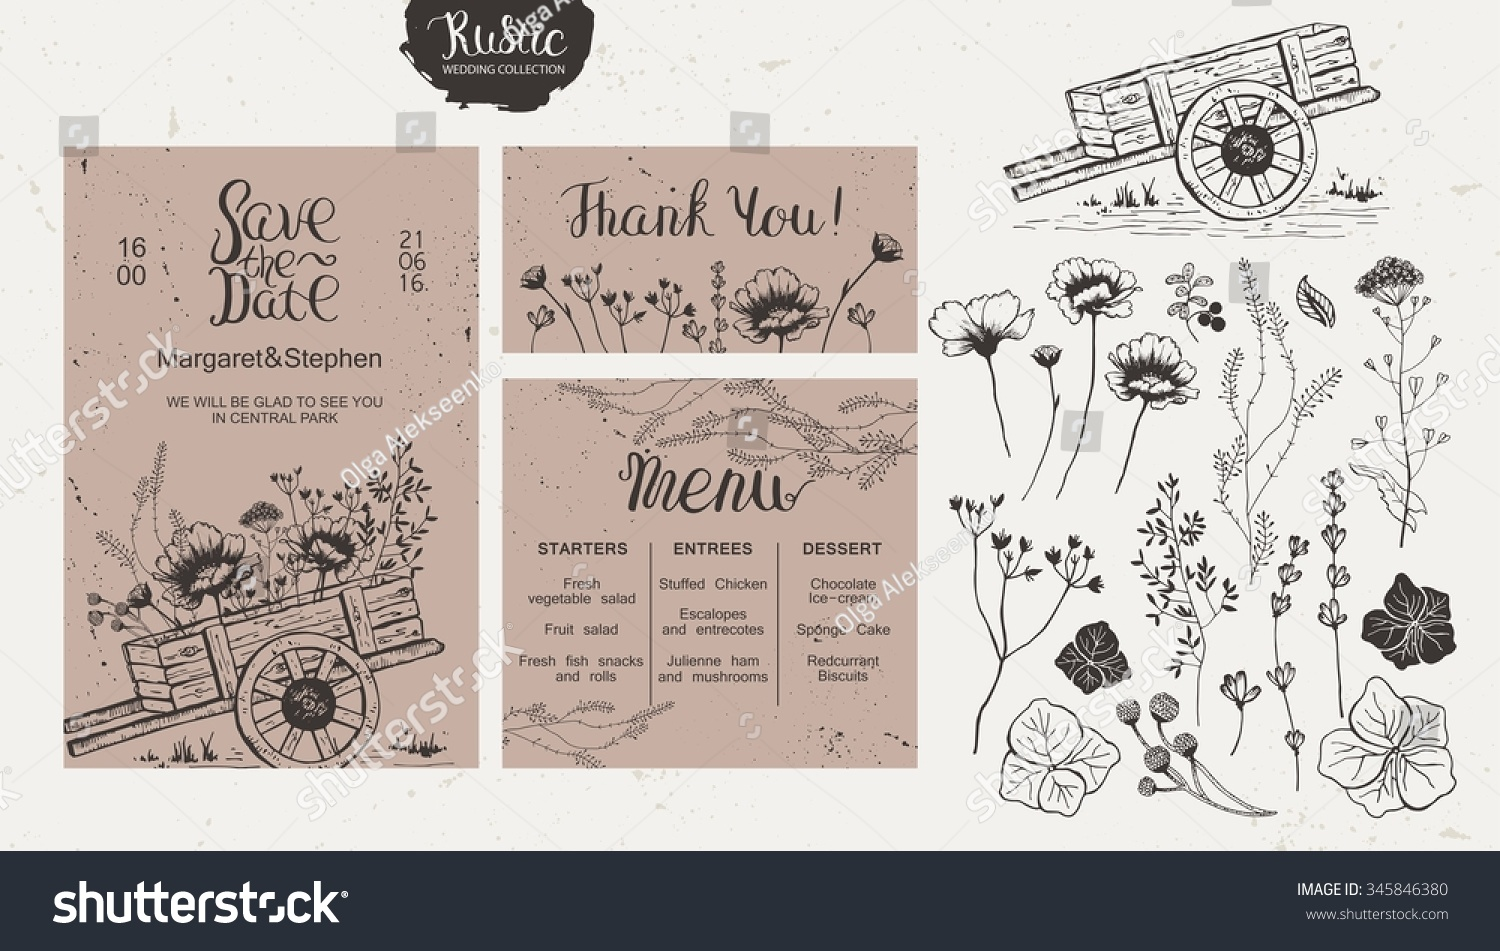 Rustic Style Wedding Collection Wedding Invitation Stock Vector ...